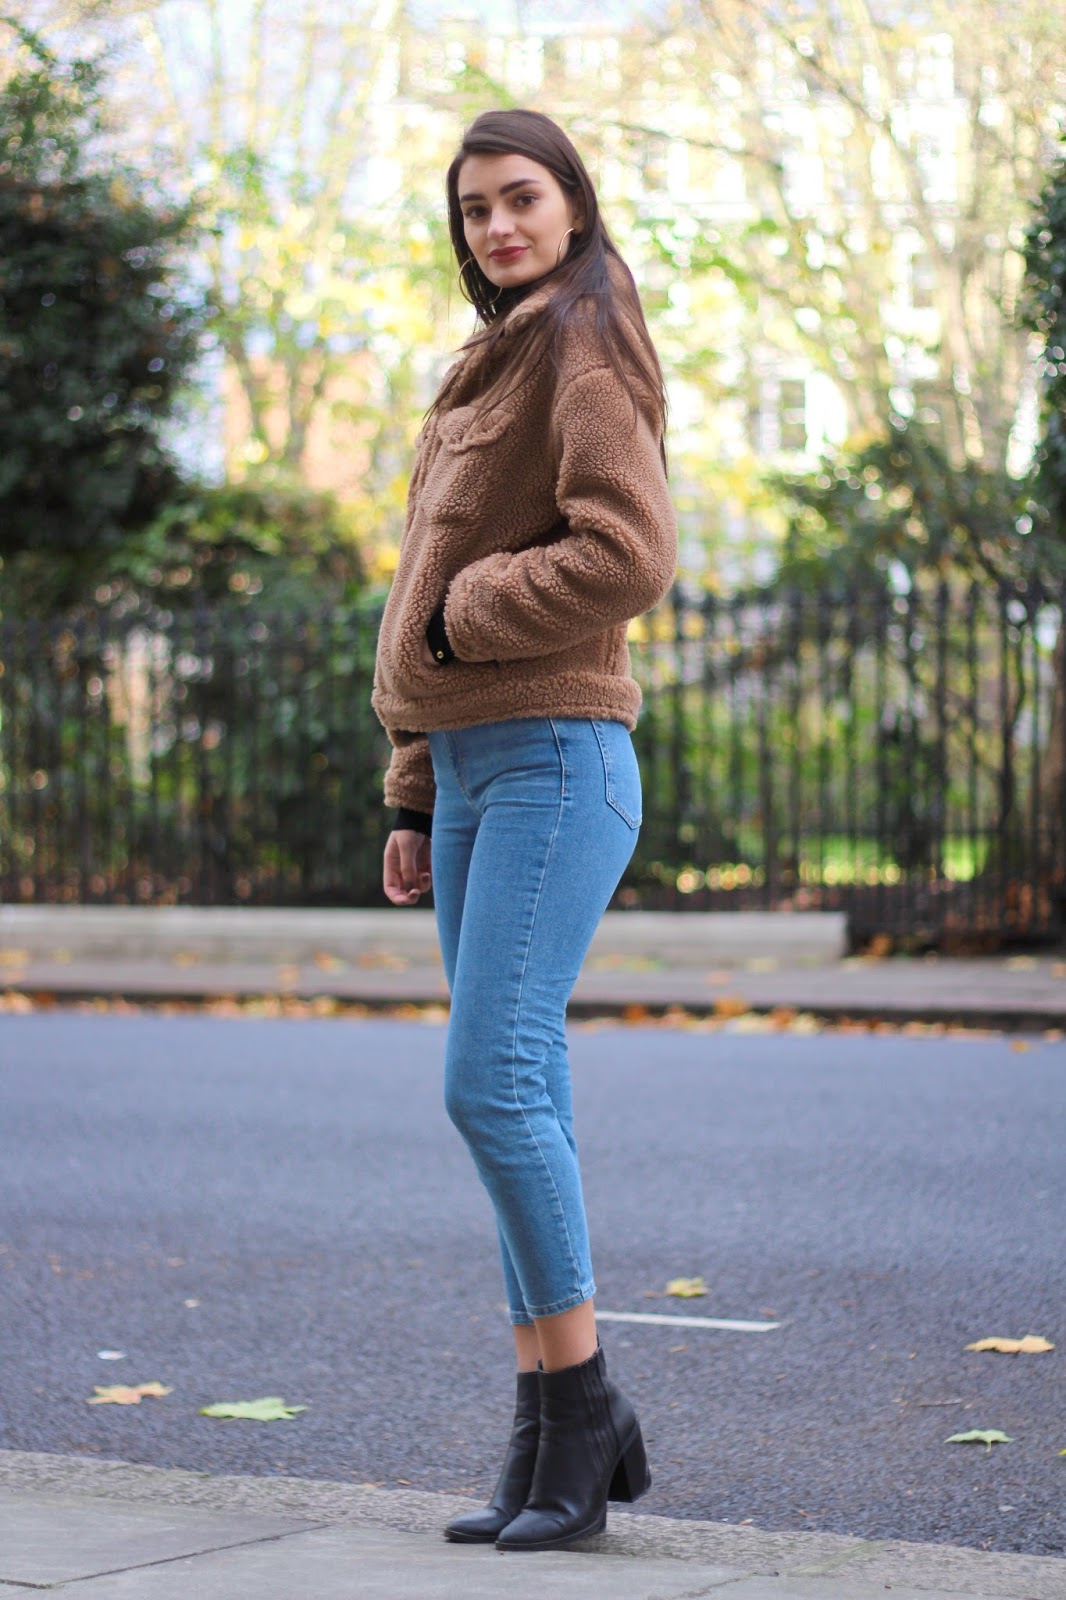 personal style peexo blog london